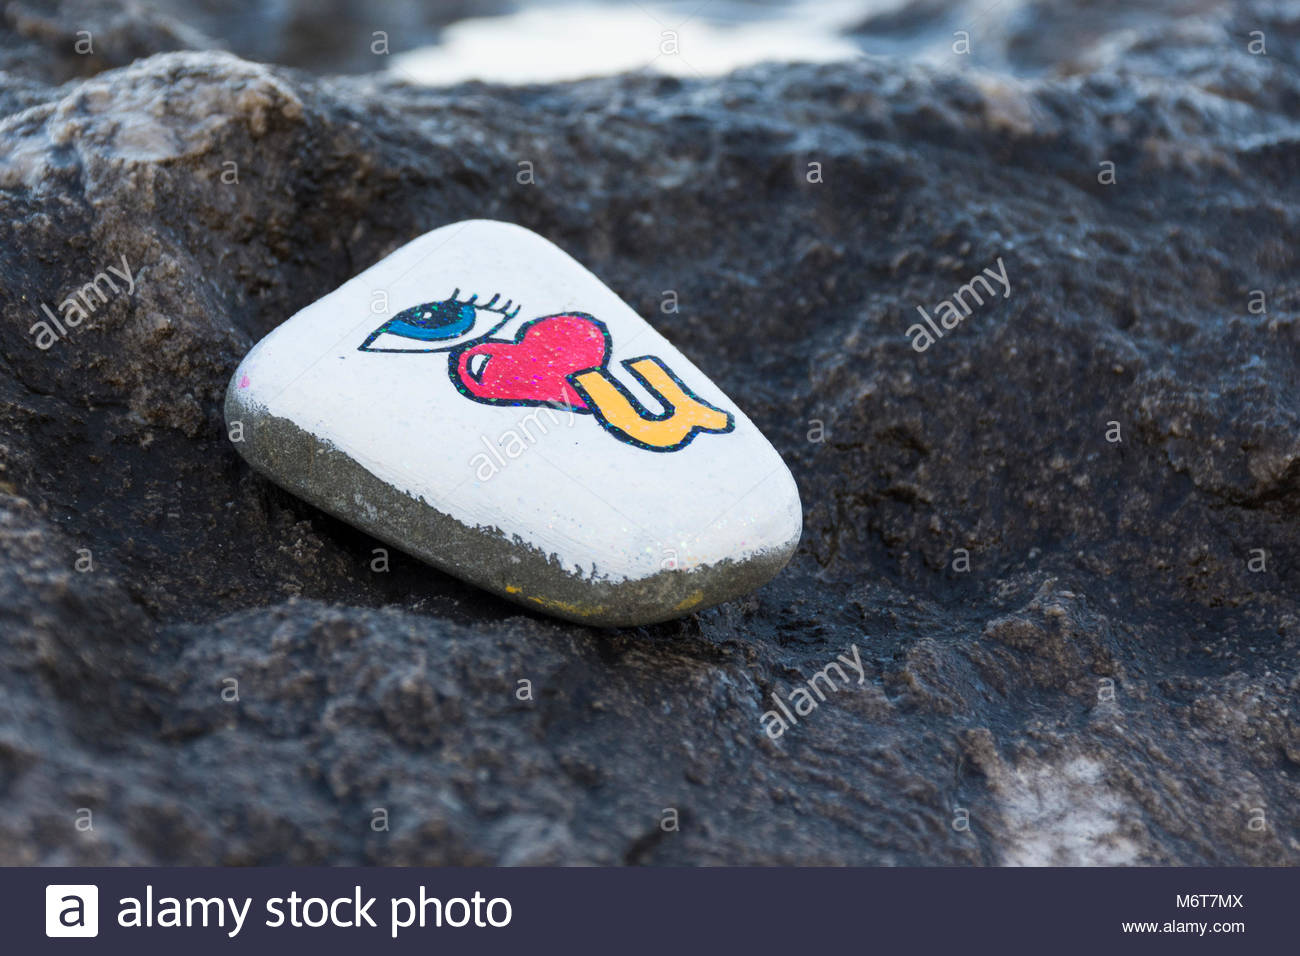 A painted stone with a 'i love you' message left  on a rock as part of a stone hunting game popular with - Stock Image